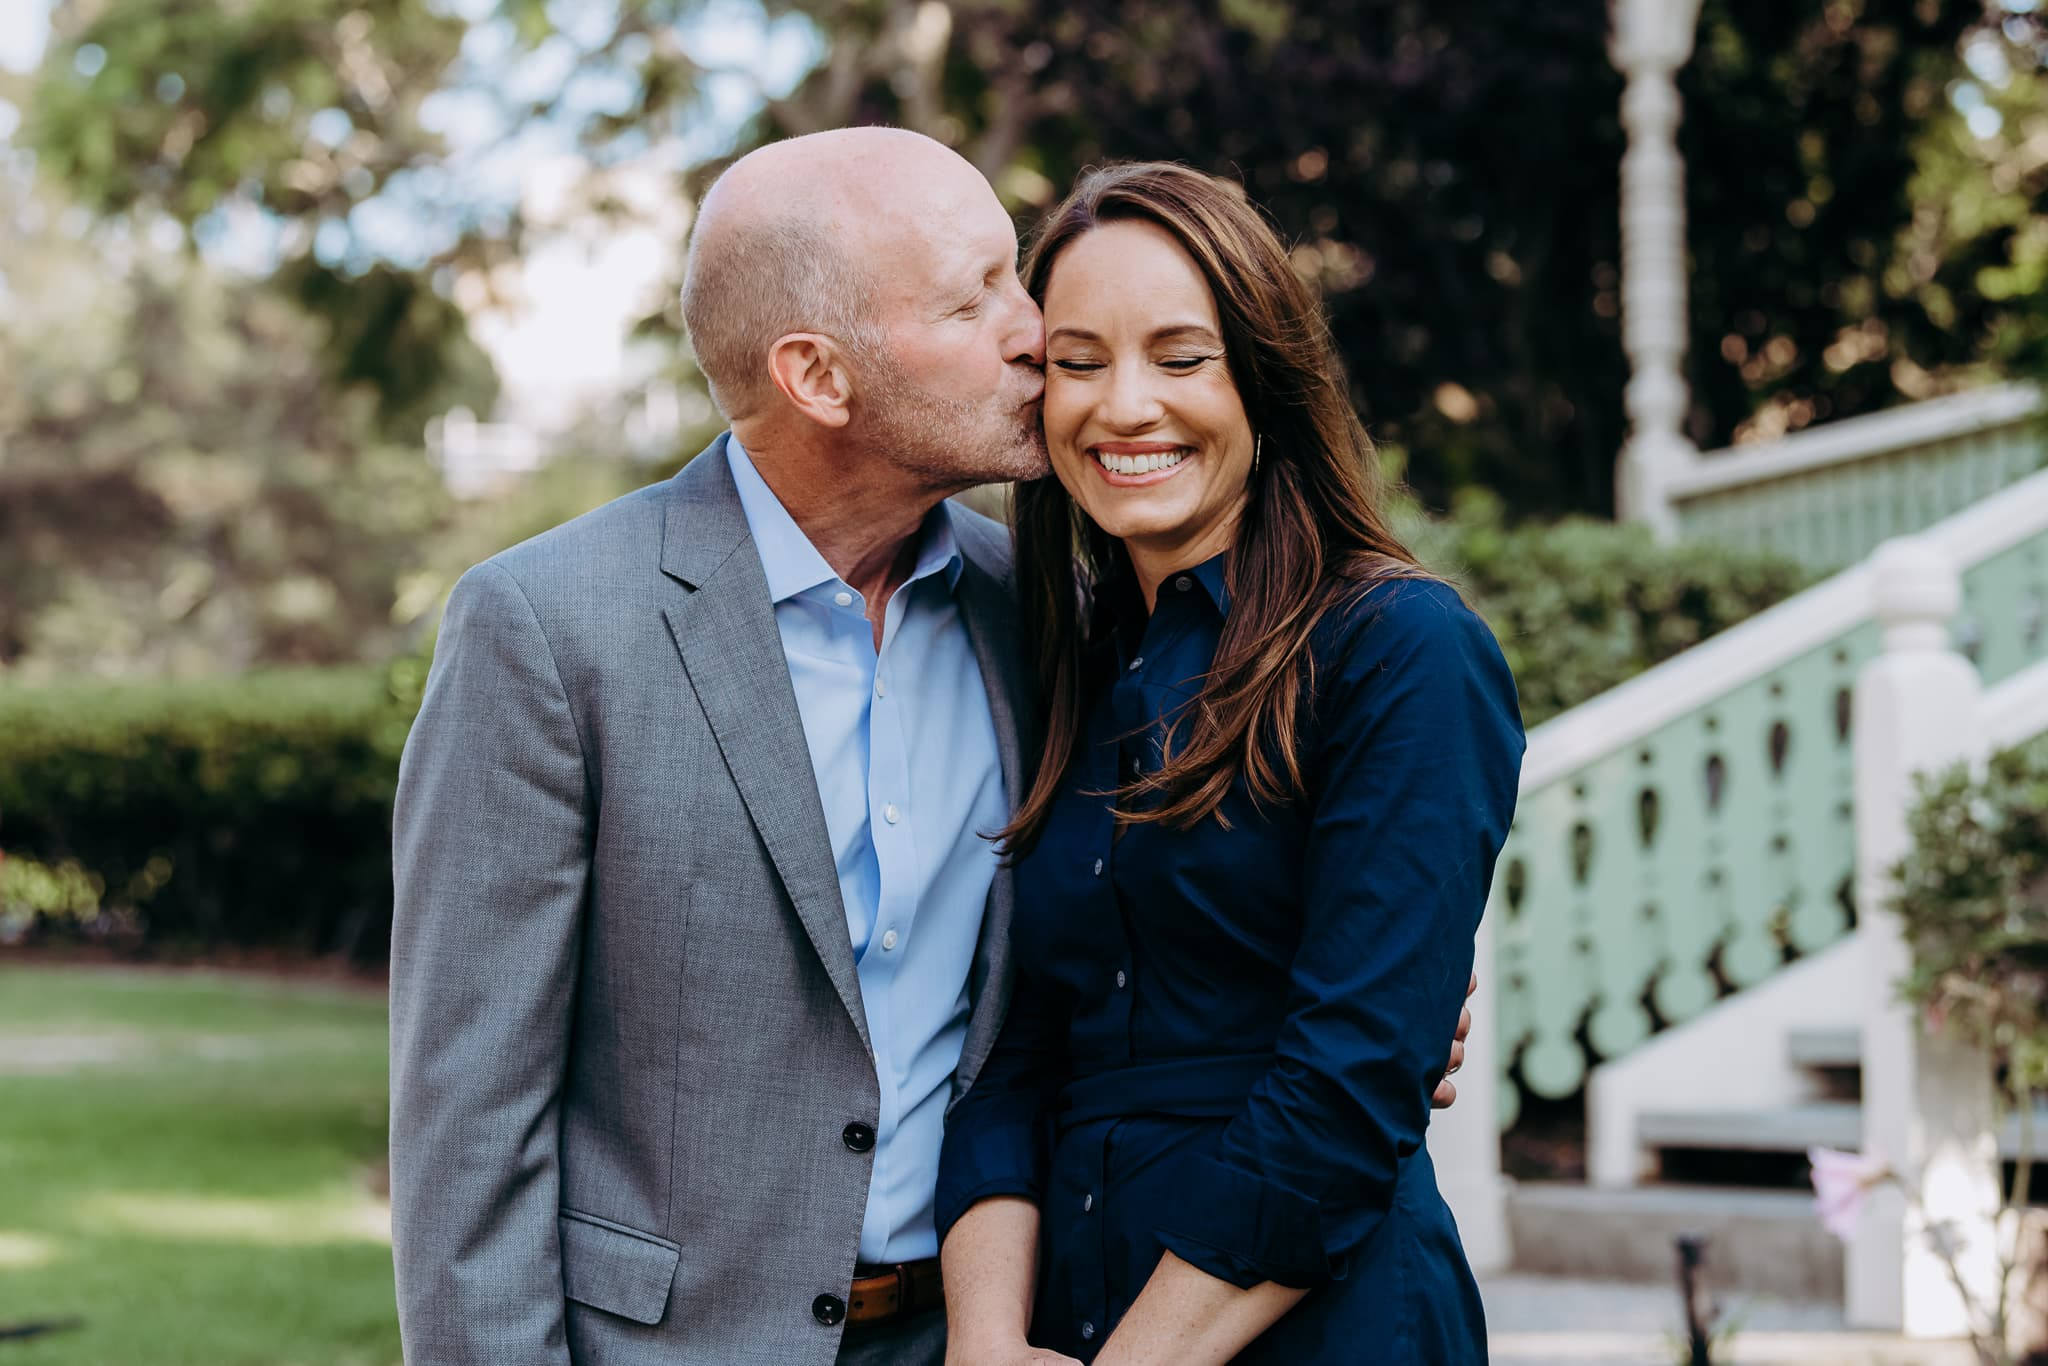 San Diego Couples Photography, Husband kissing wife's cheek